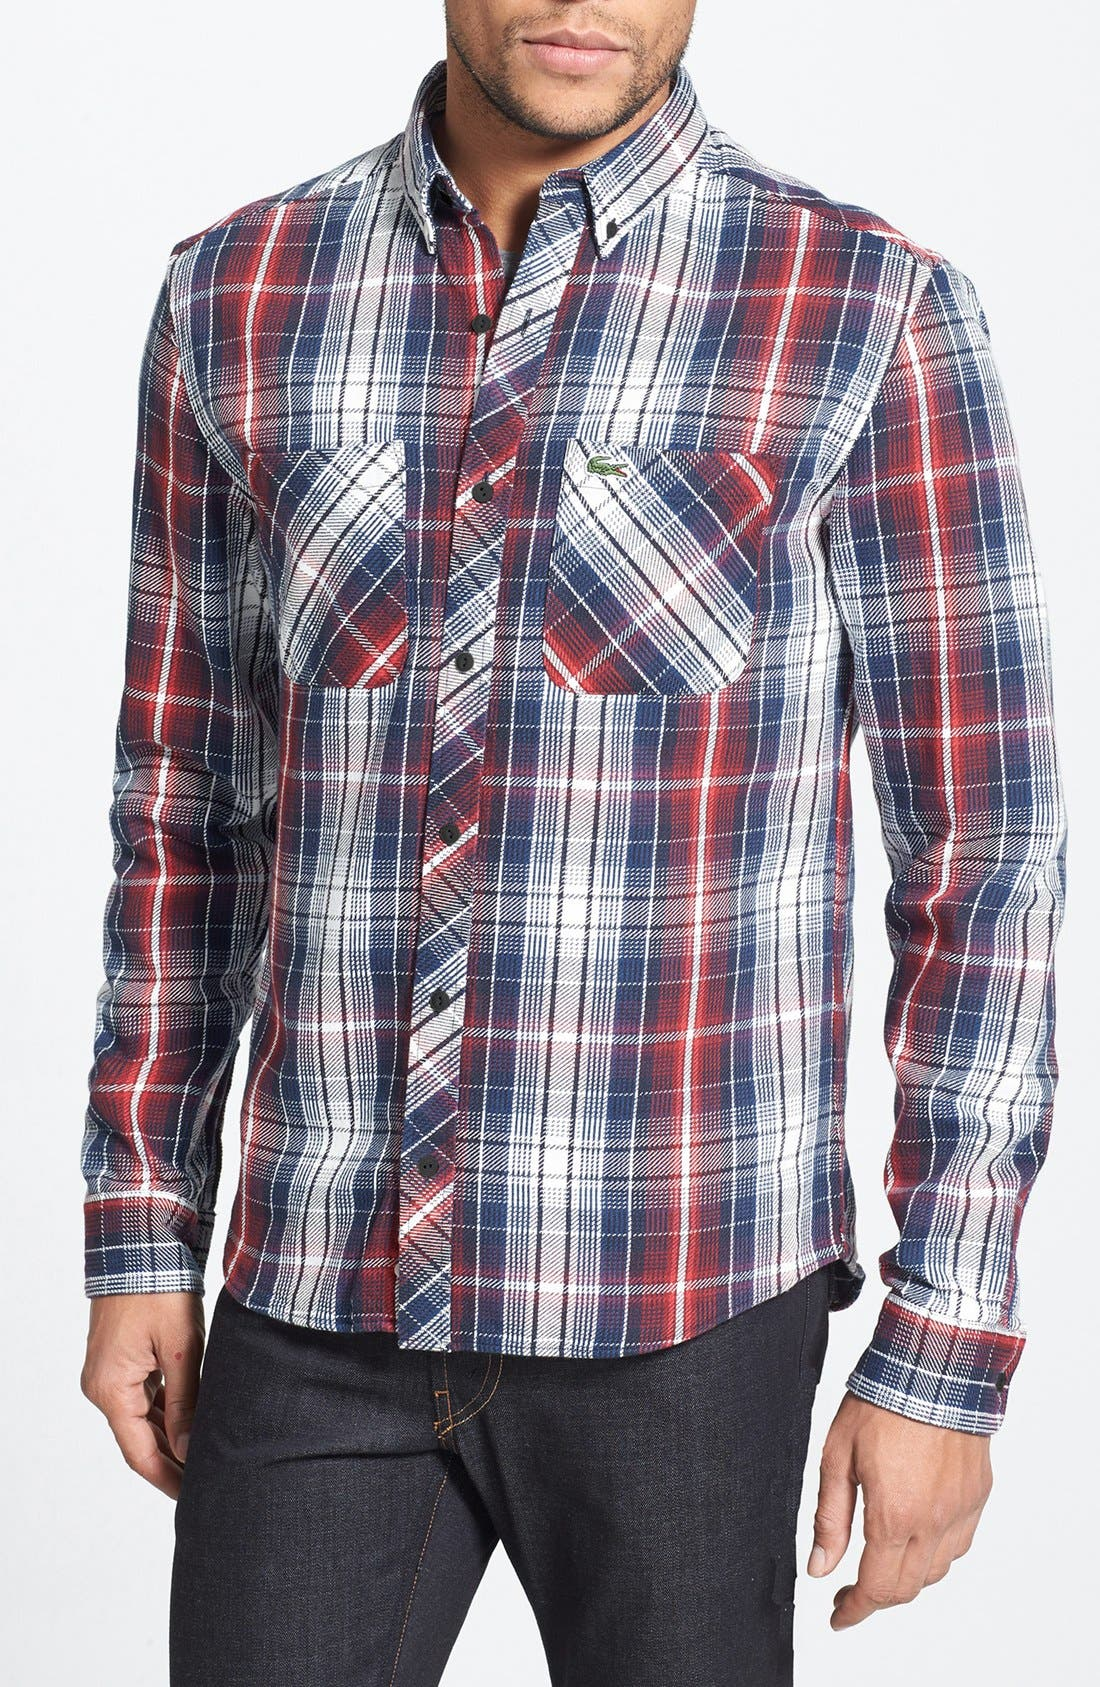 Alternate Image 1 Selected - Lacoste L!VE Plaid Twill Shirt